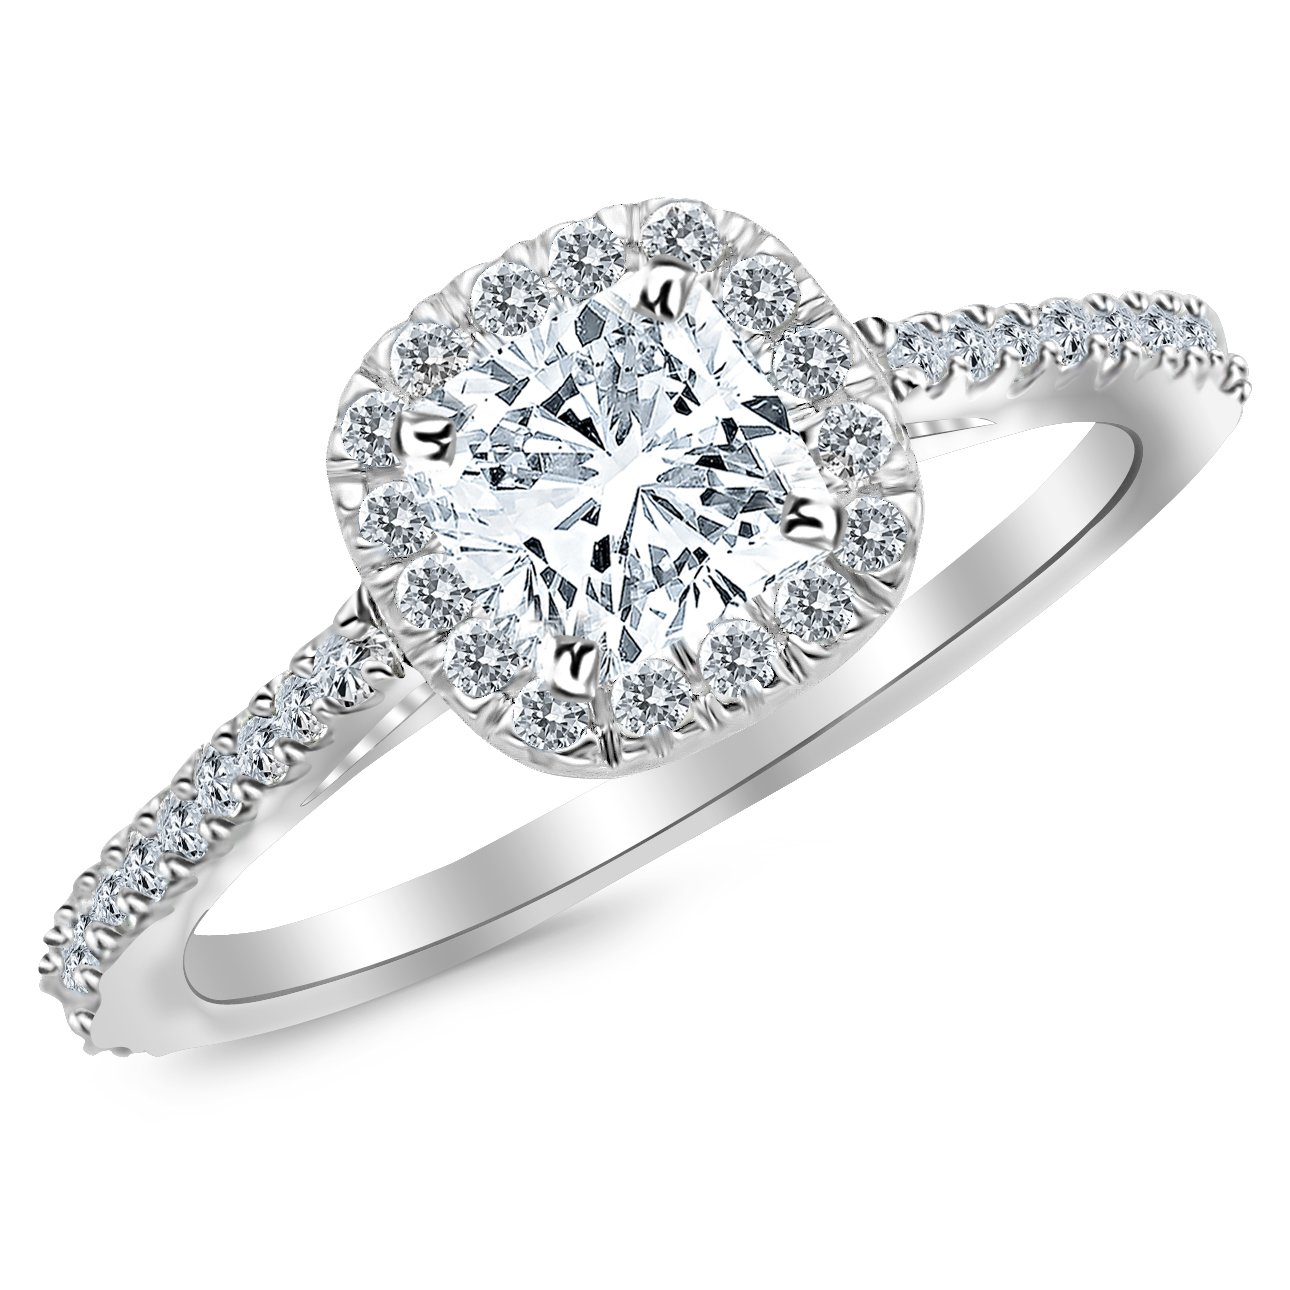 anna brides style gallery bride classic the for engagement rings hazeline ring timeless sheffield